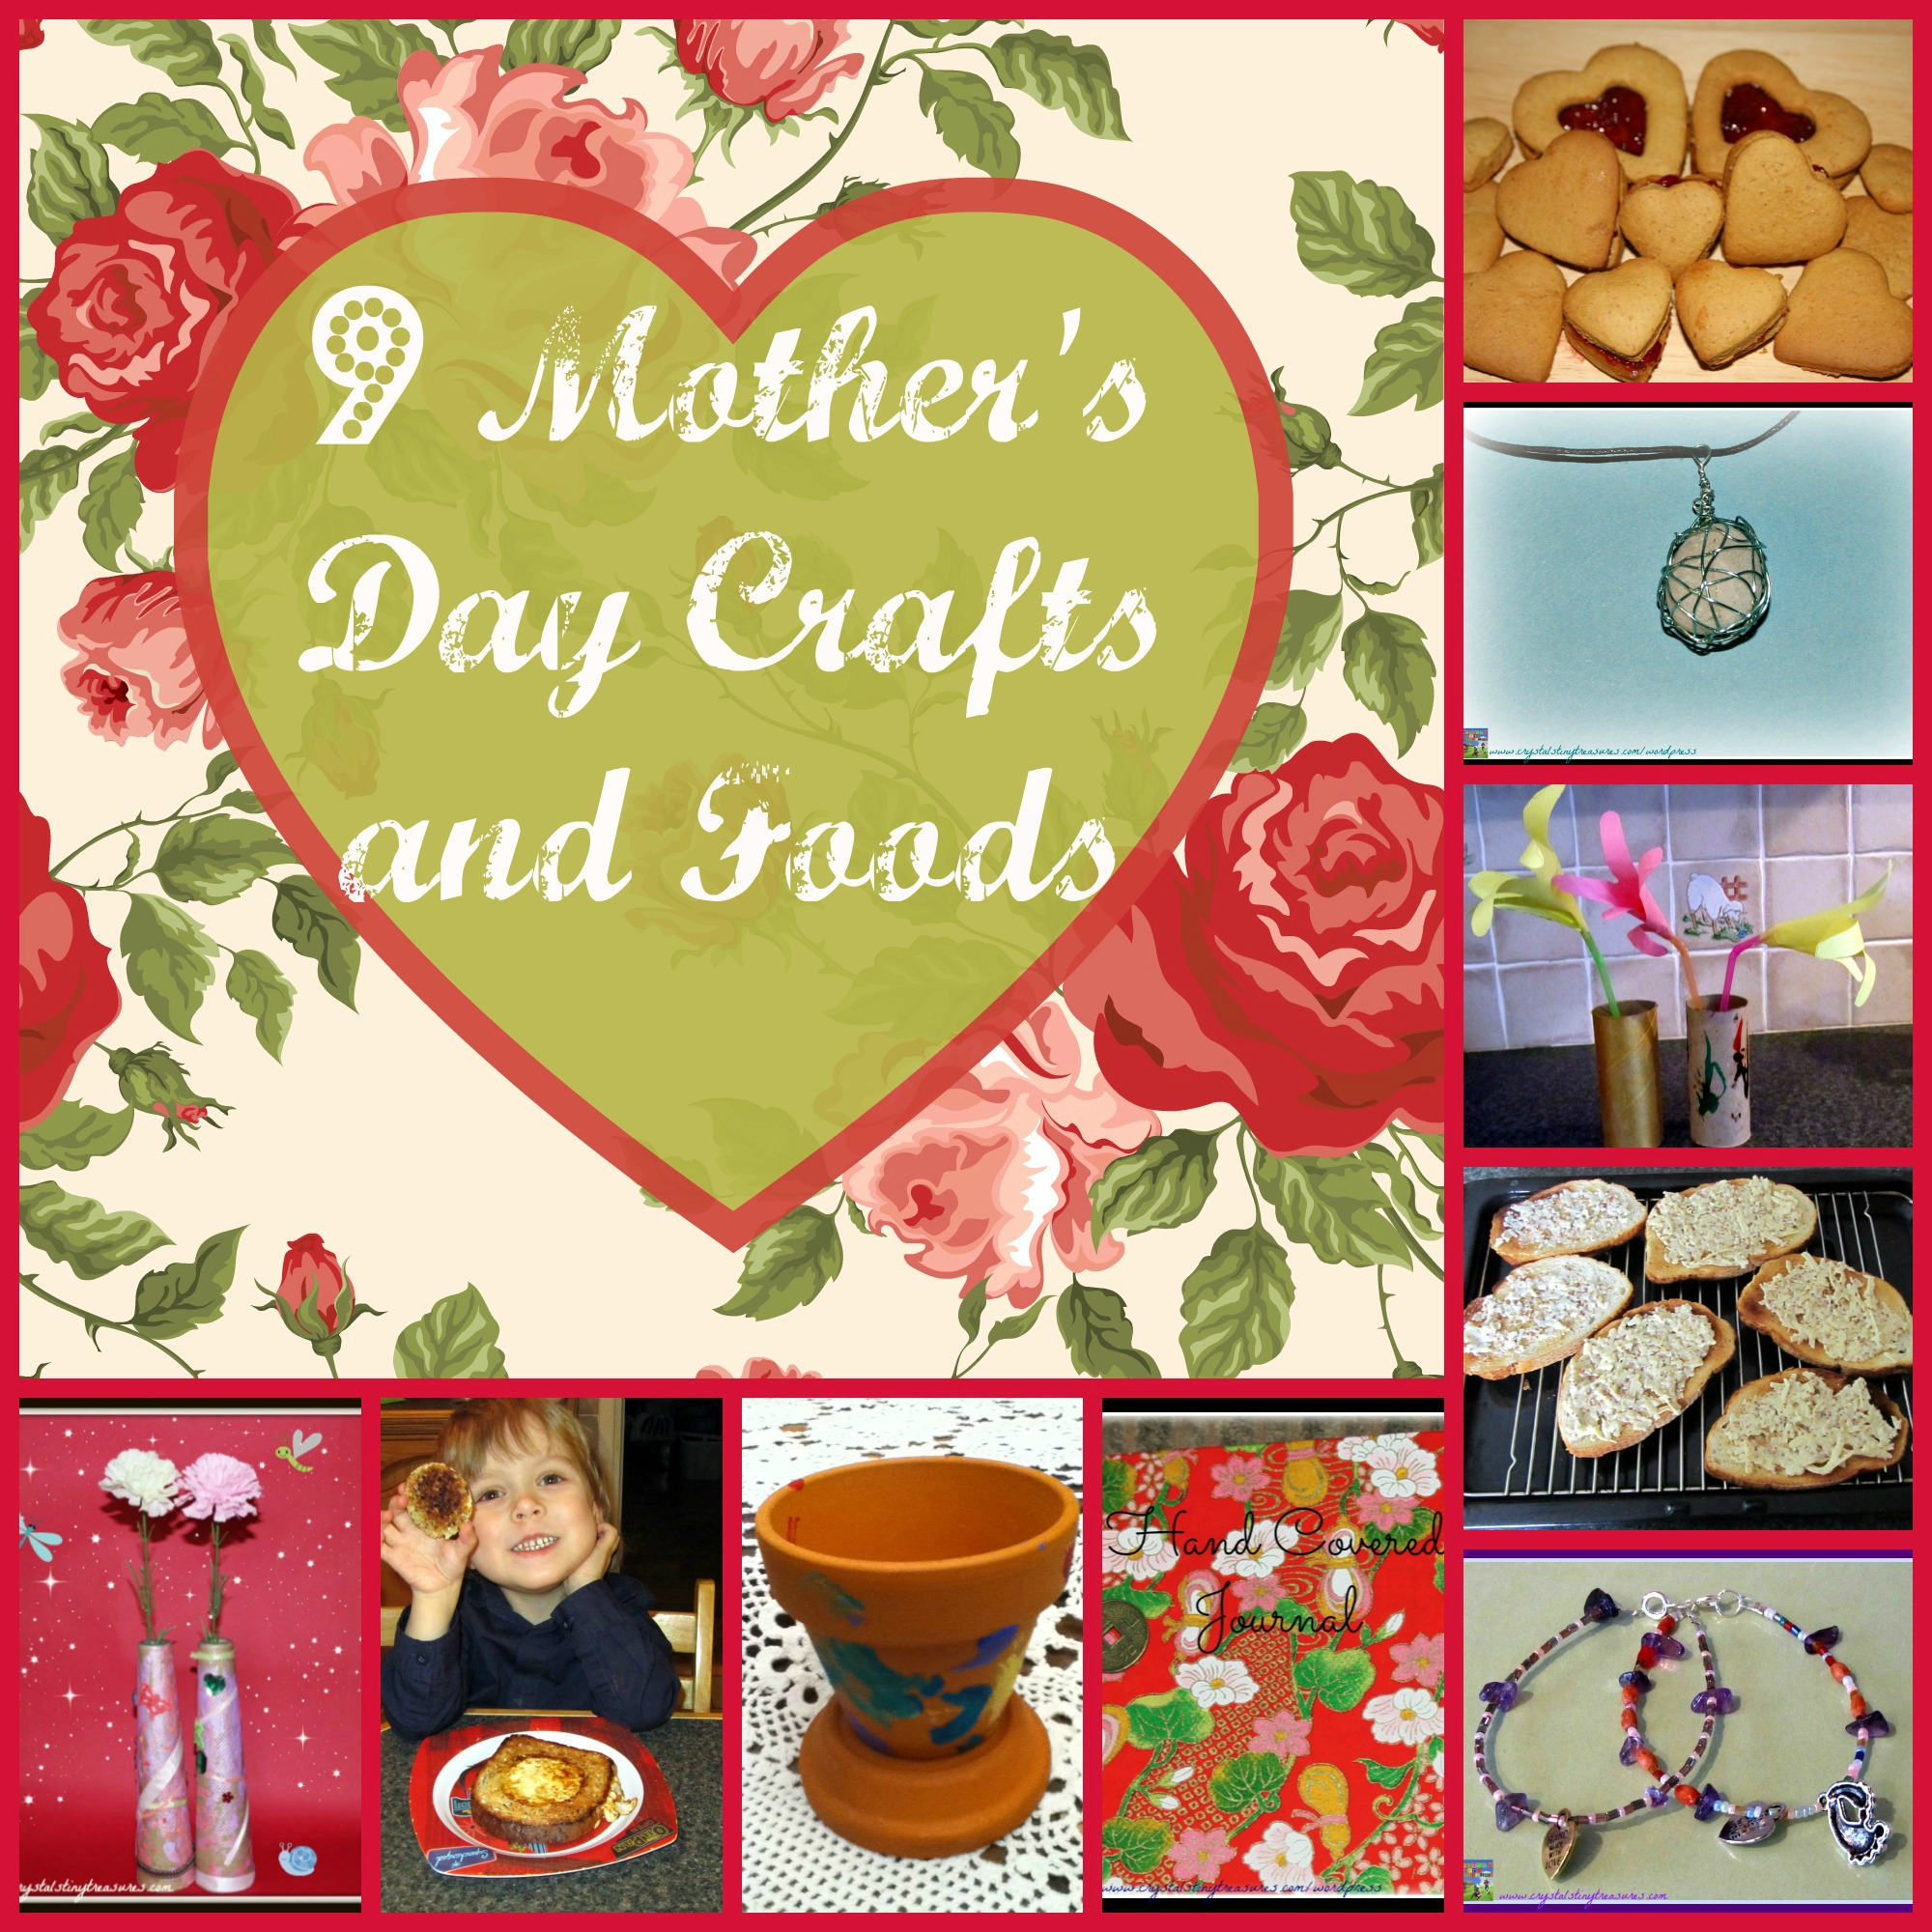 9 Mother's Day Craft and Food Ideas